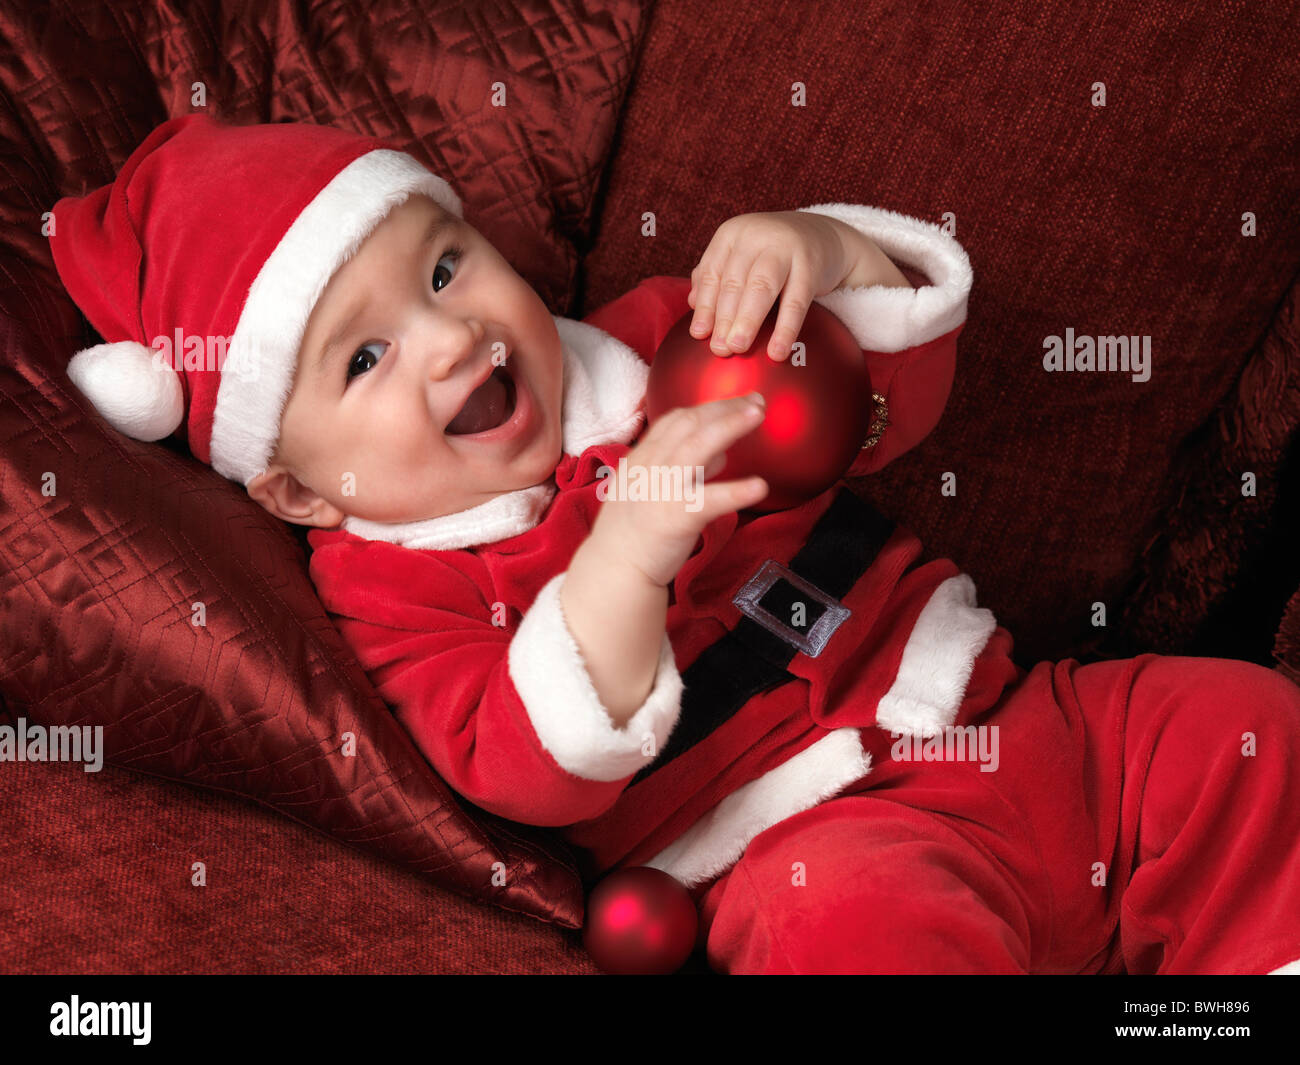 8aaa125e6 Happy smiling six month old baby boy in Santa Christmas costume lying on a  sofa with a red bauble in his hands